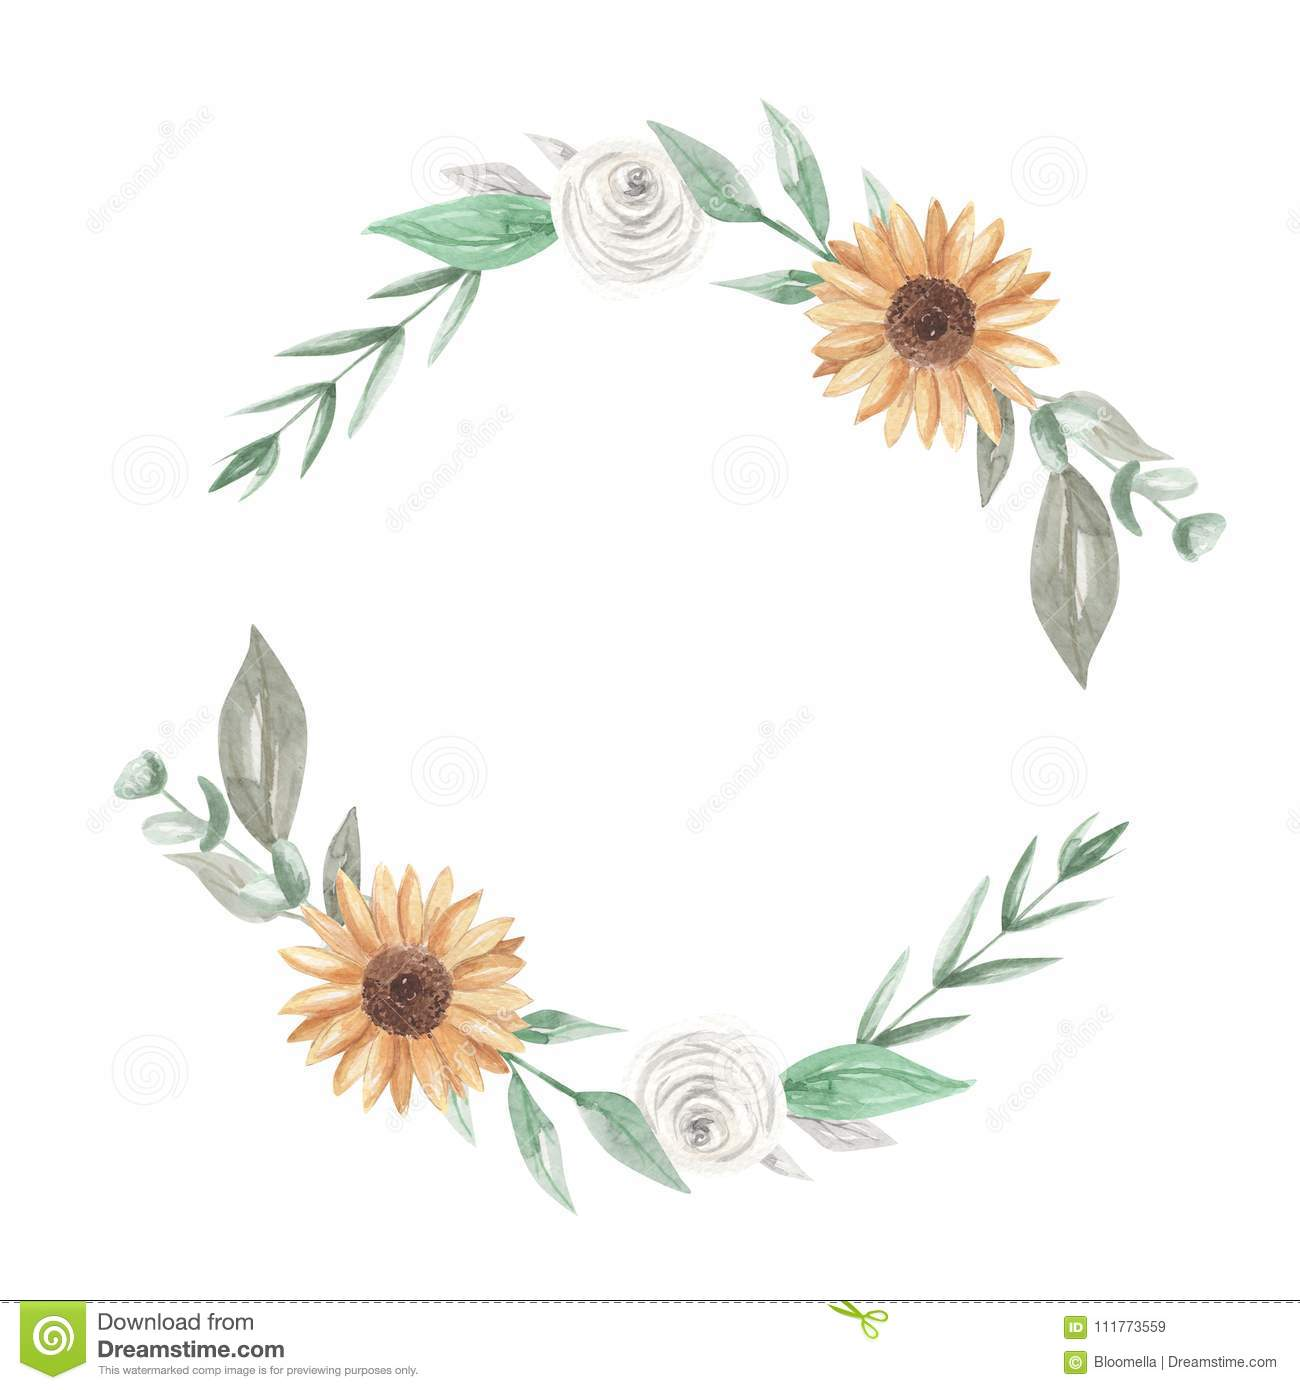 Sunflowers Watercolor Wreath Garland Clipart Flowers White ...